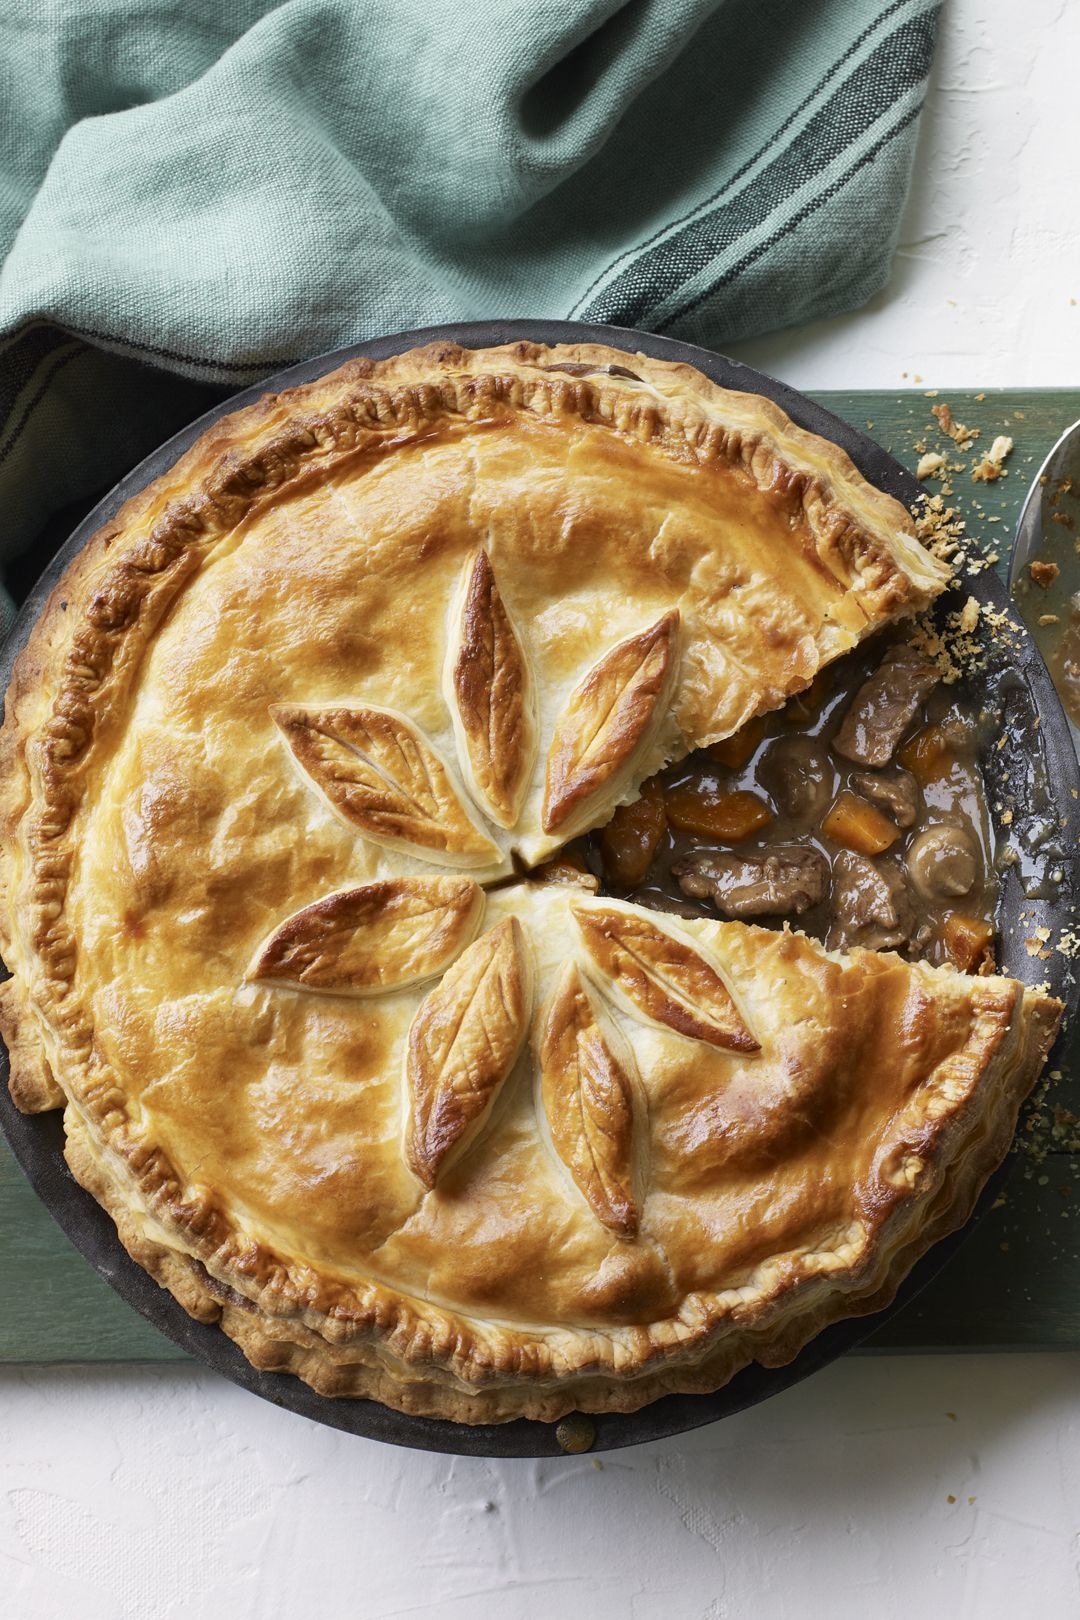 Steak and stout pie | Recipe in 2020 | Steak, stout pie ...